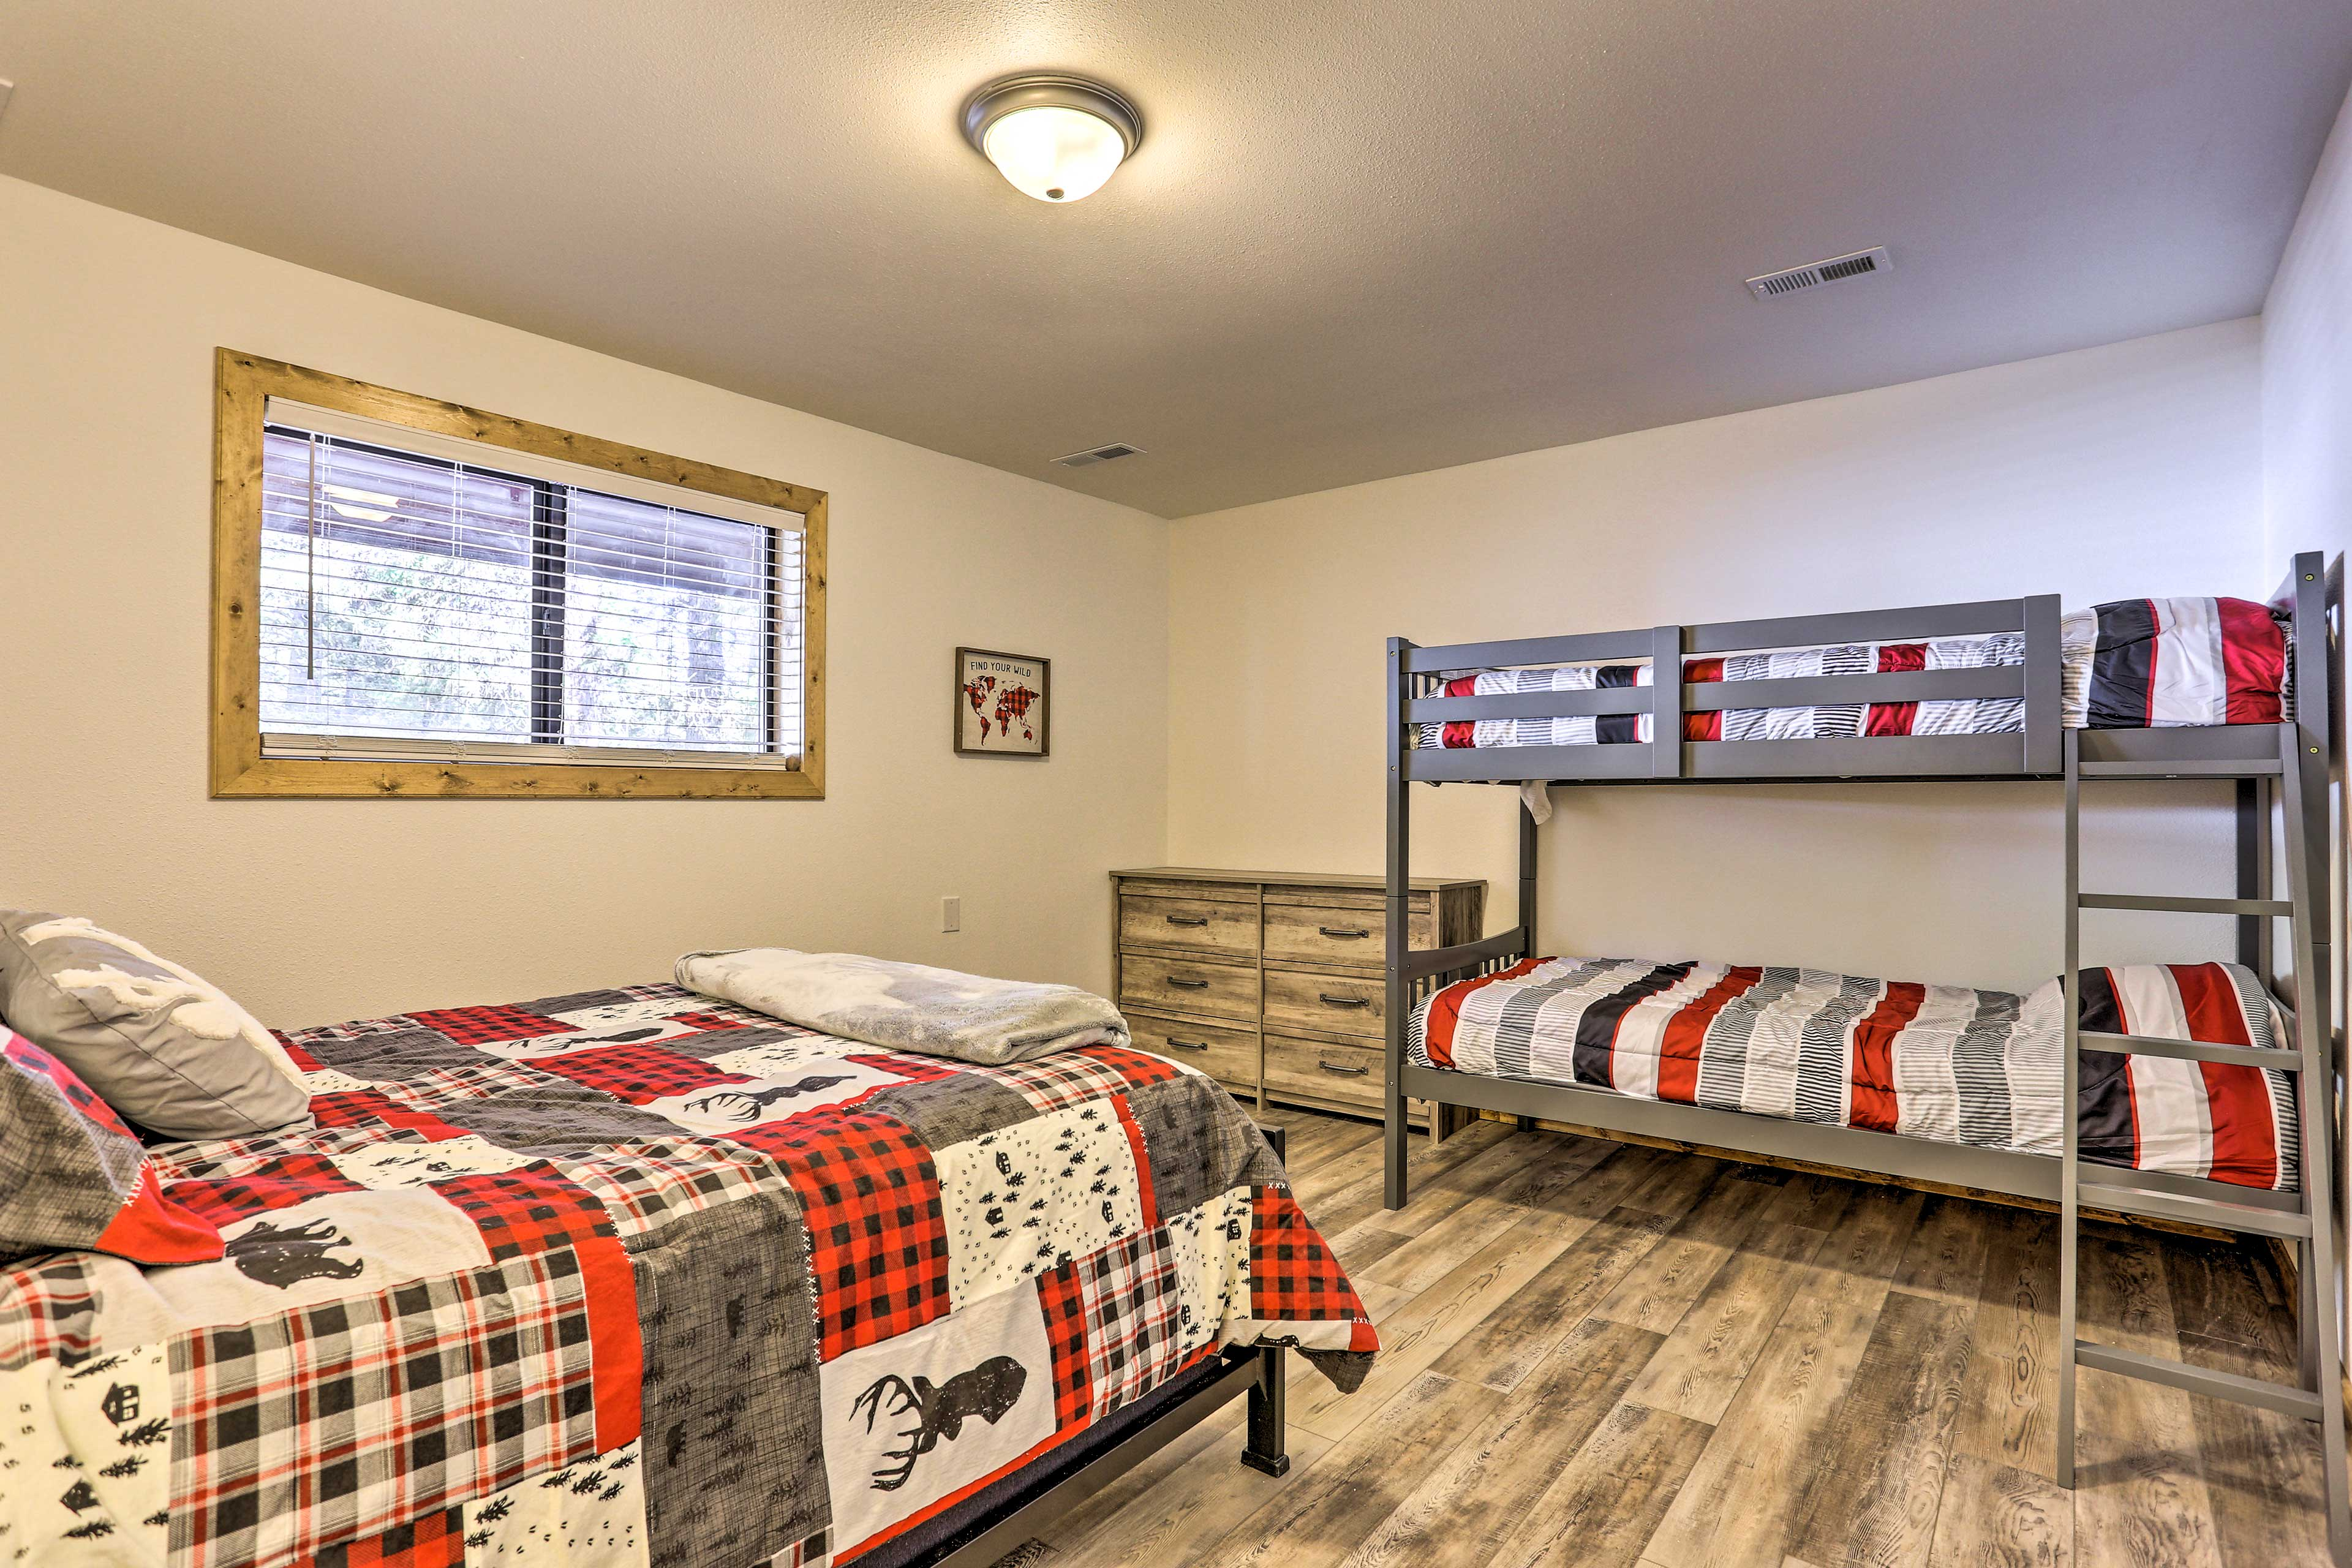 Kids can stay in the twin bunk bed of the fourth room.